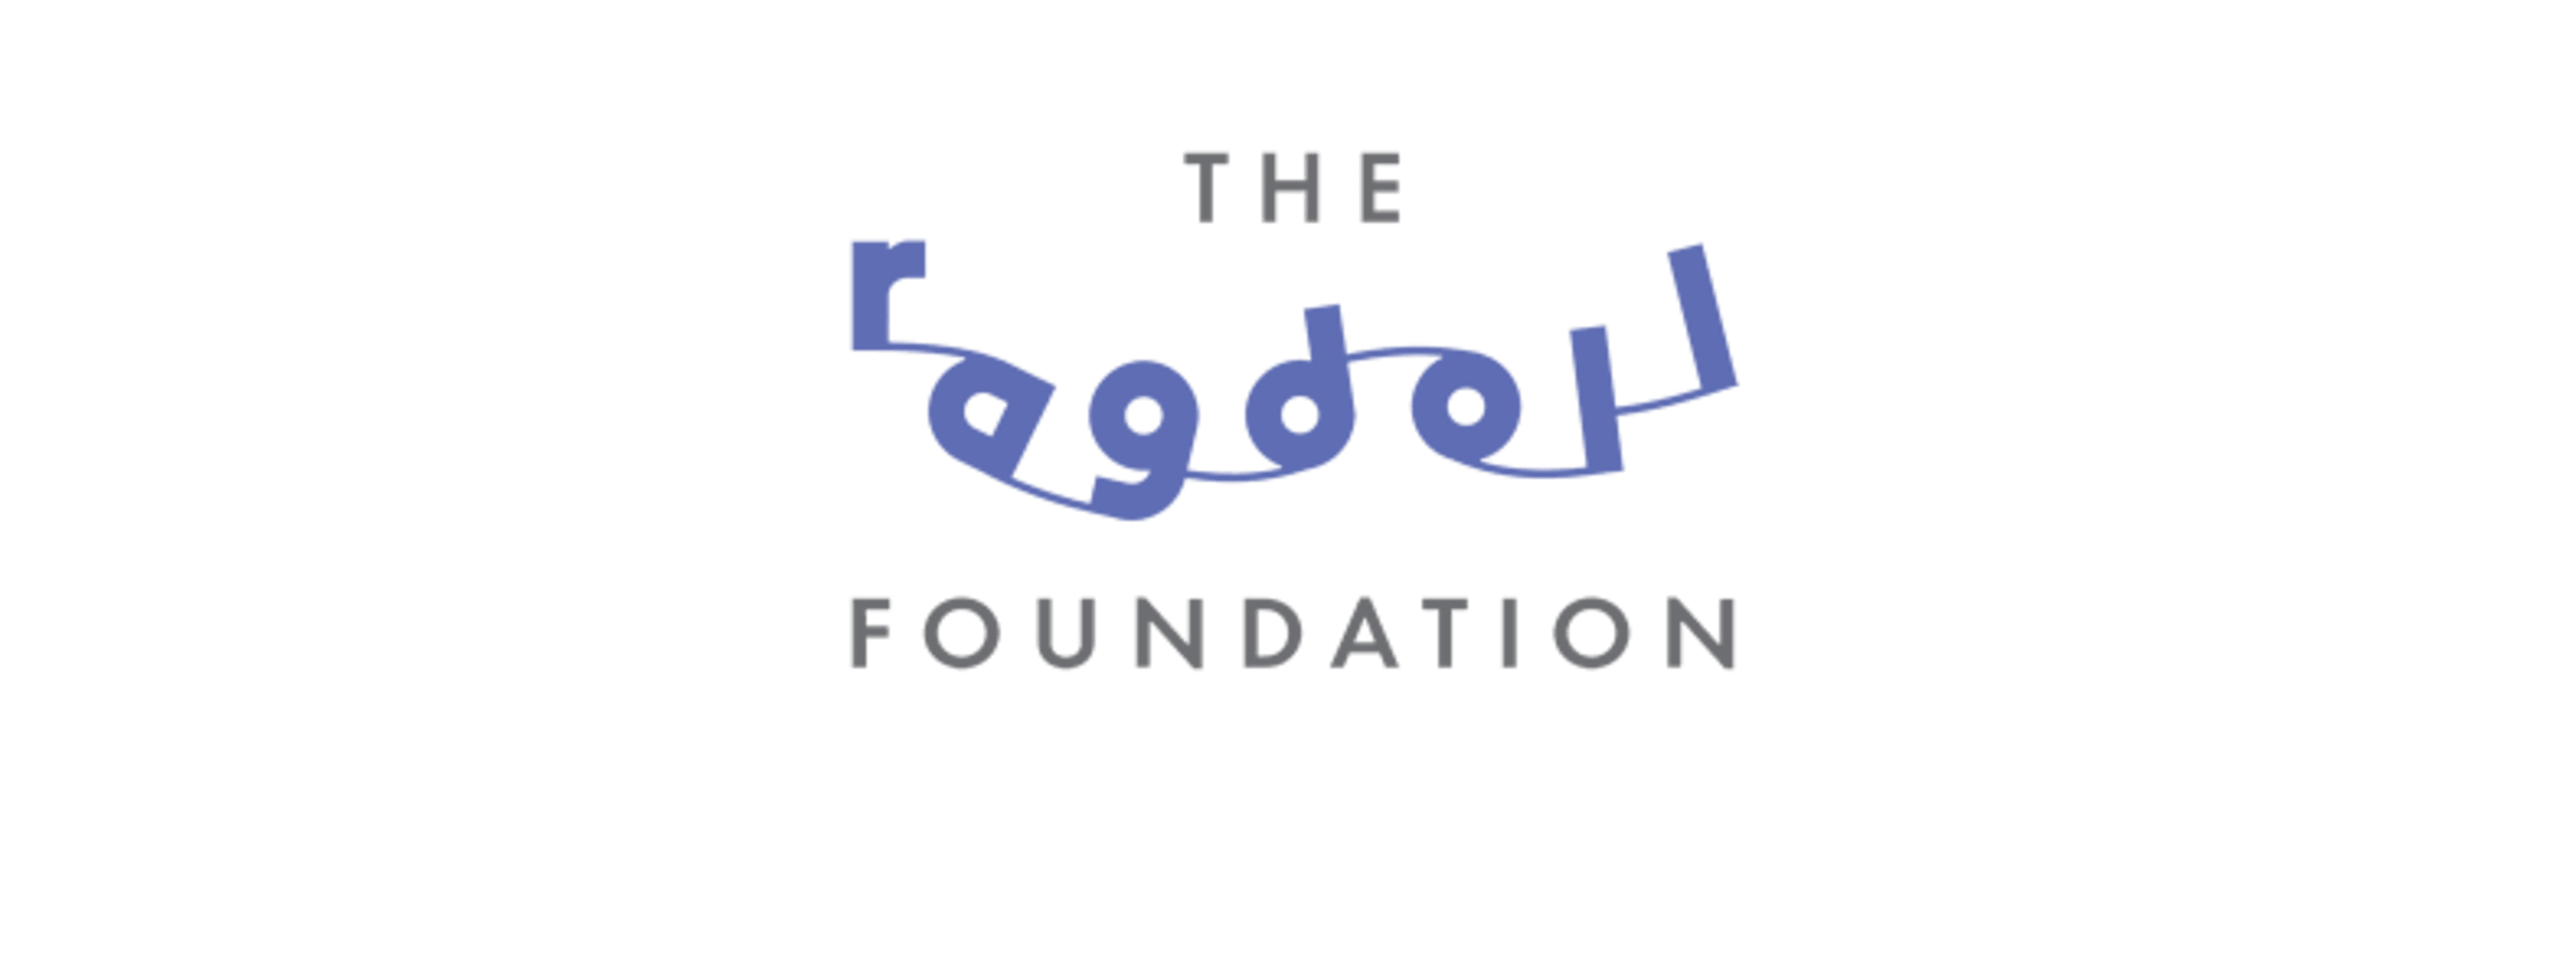 Ragdoll Foundation